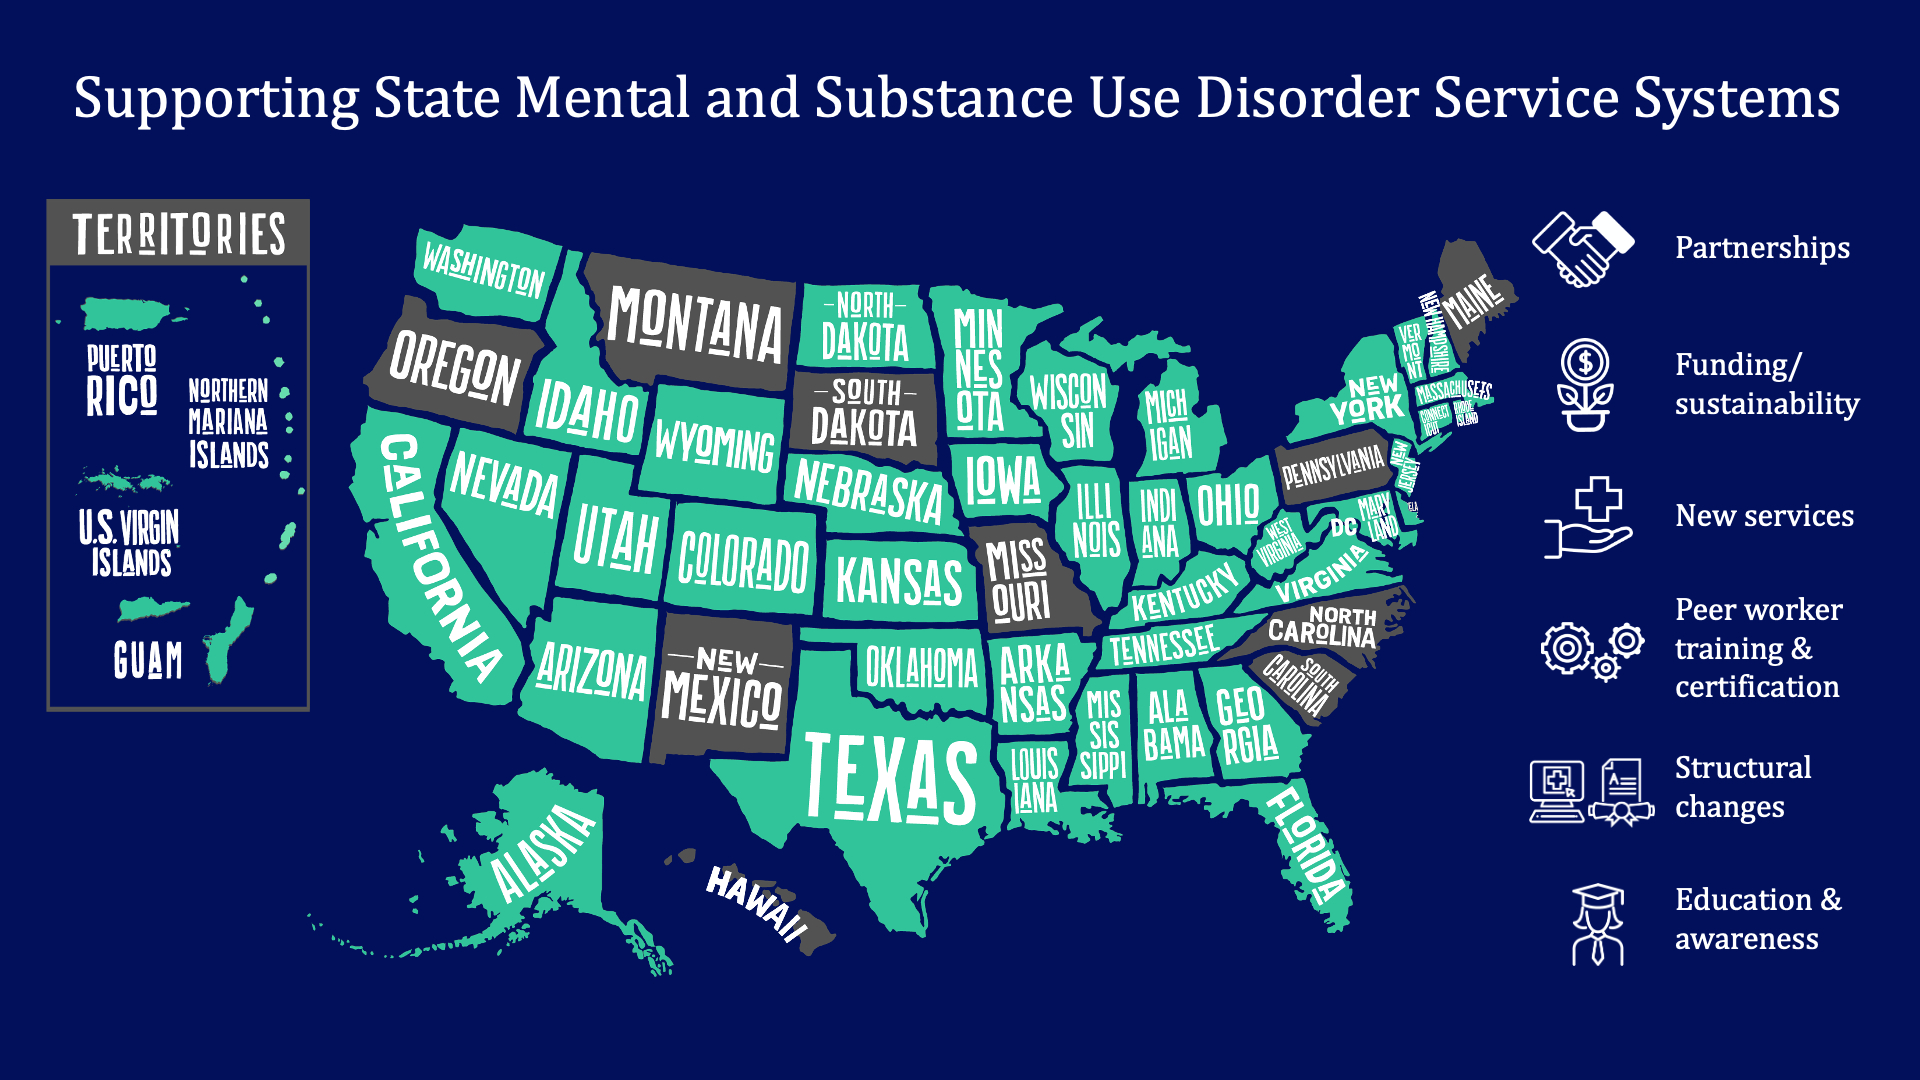 Supporting state mental and substance use disorder services